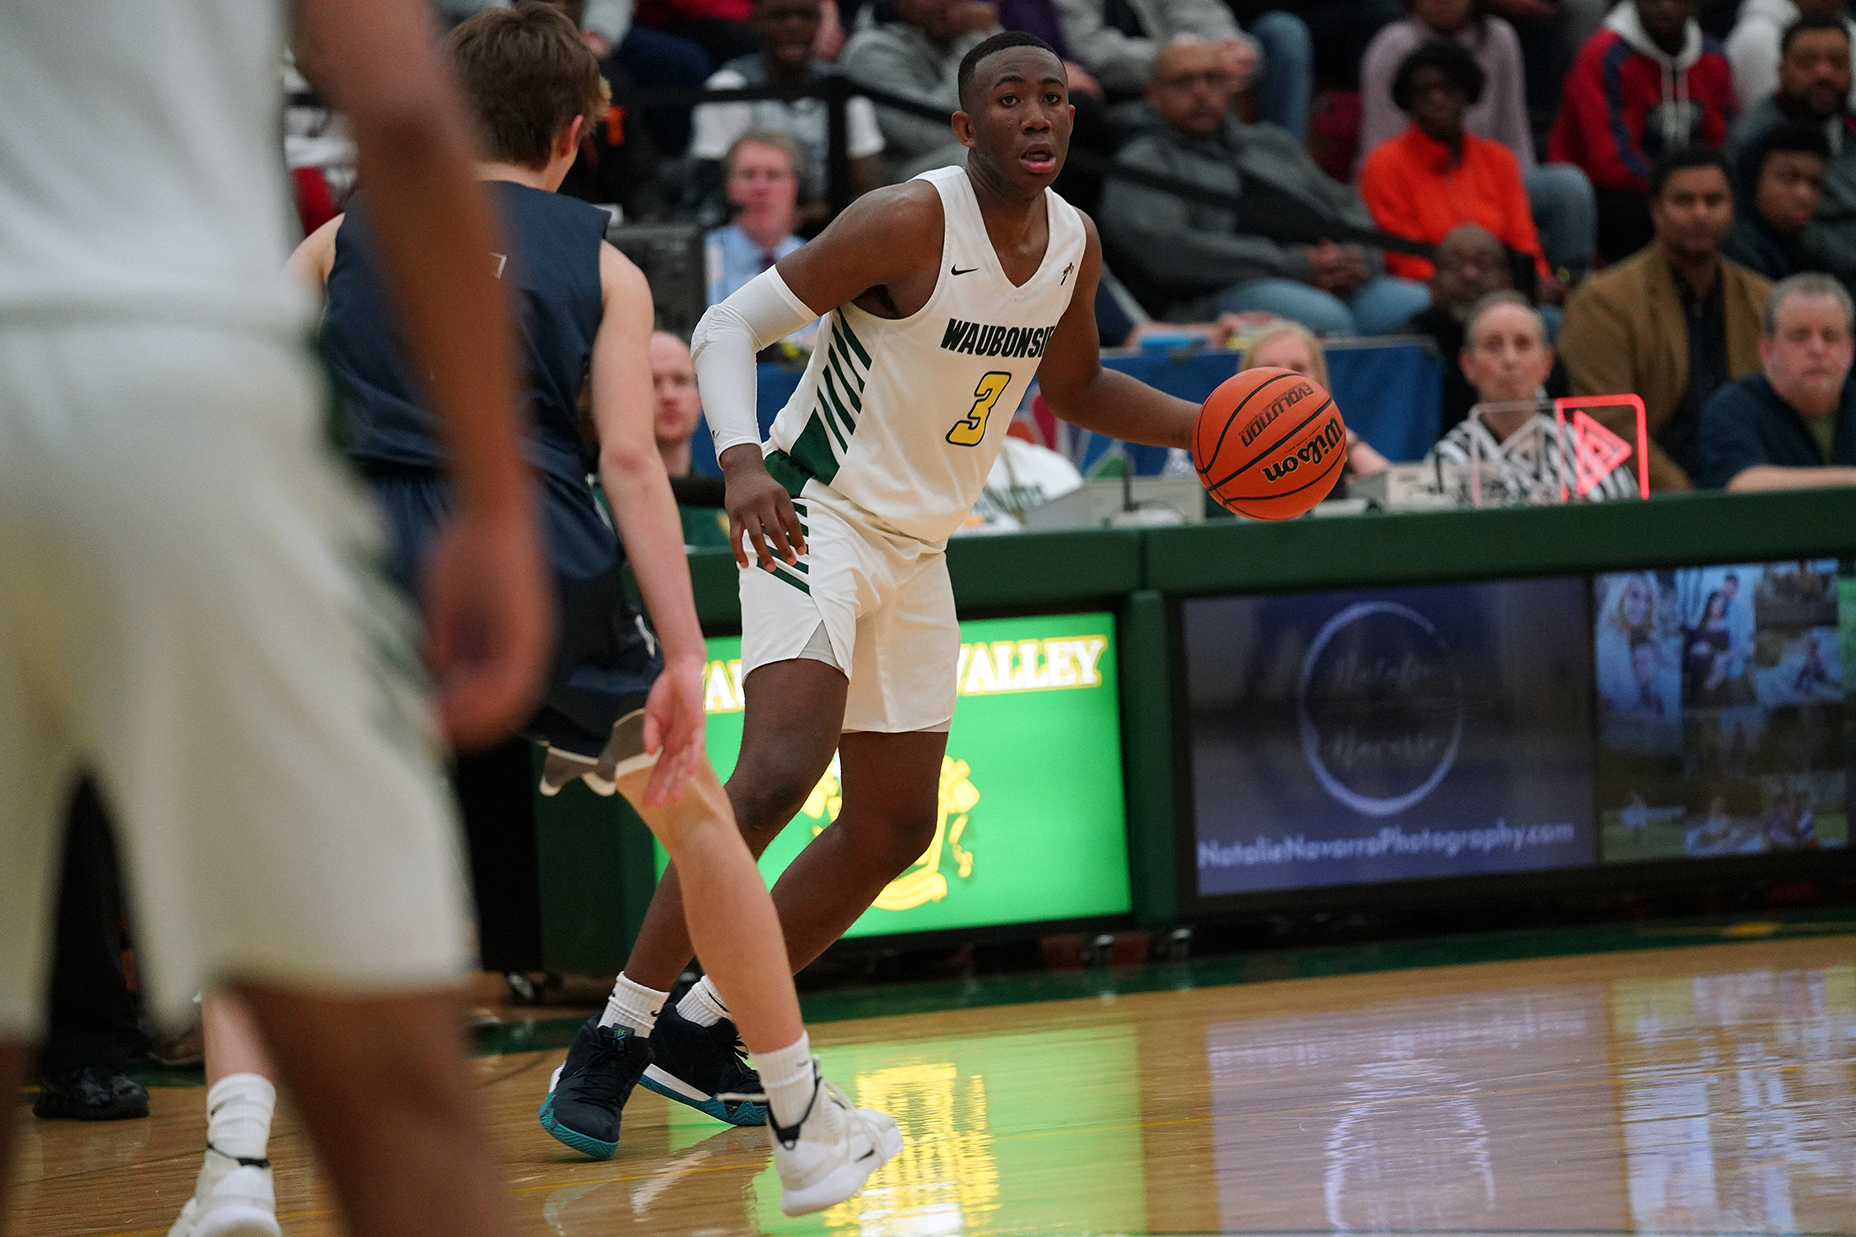 Waubonsie Valley's Marcus Skeete brings the ball back to the top of the key.